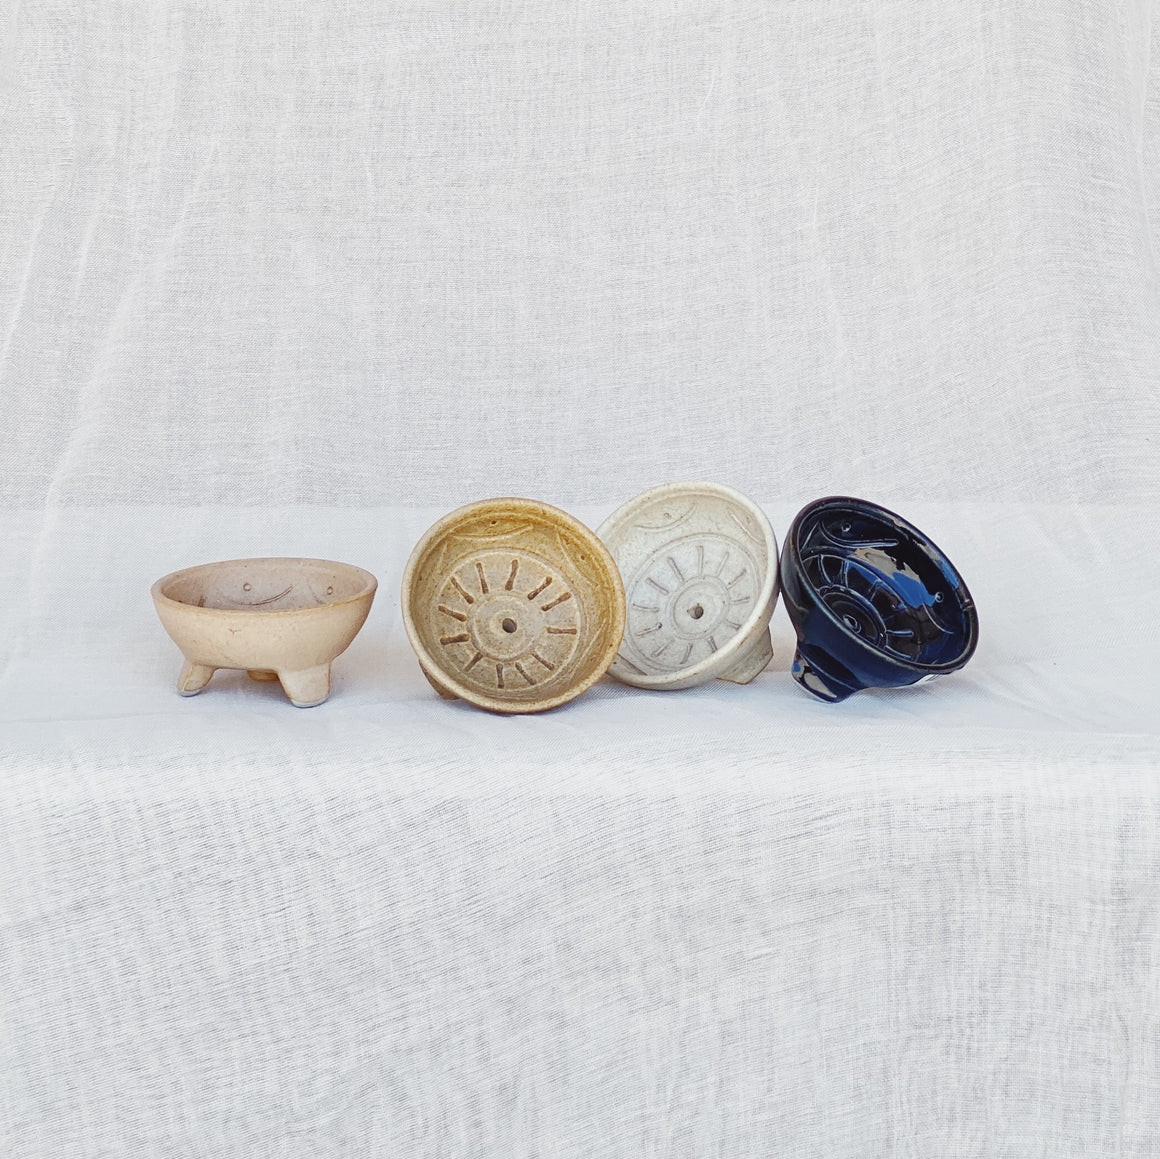 Incense Holder Dish Ceramic Round